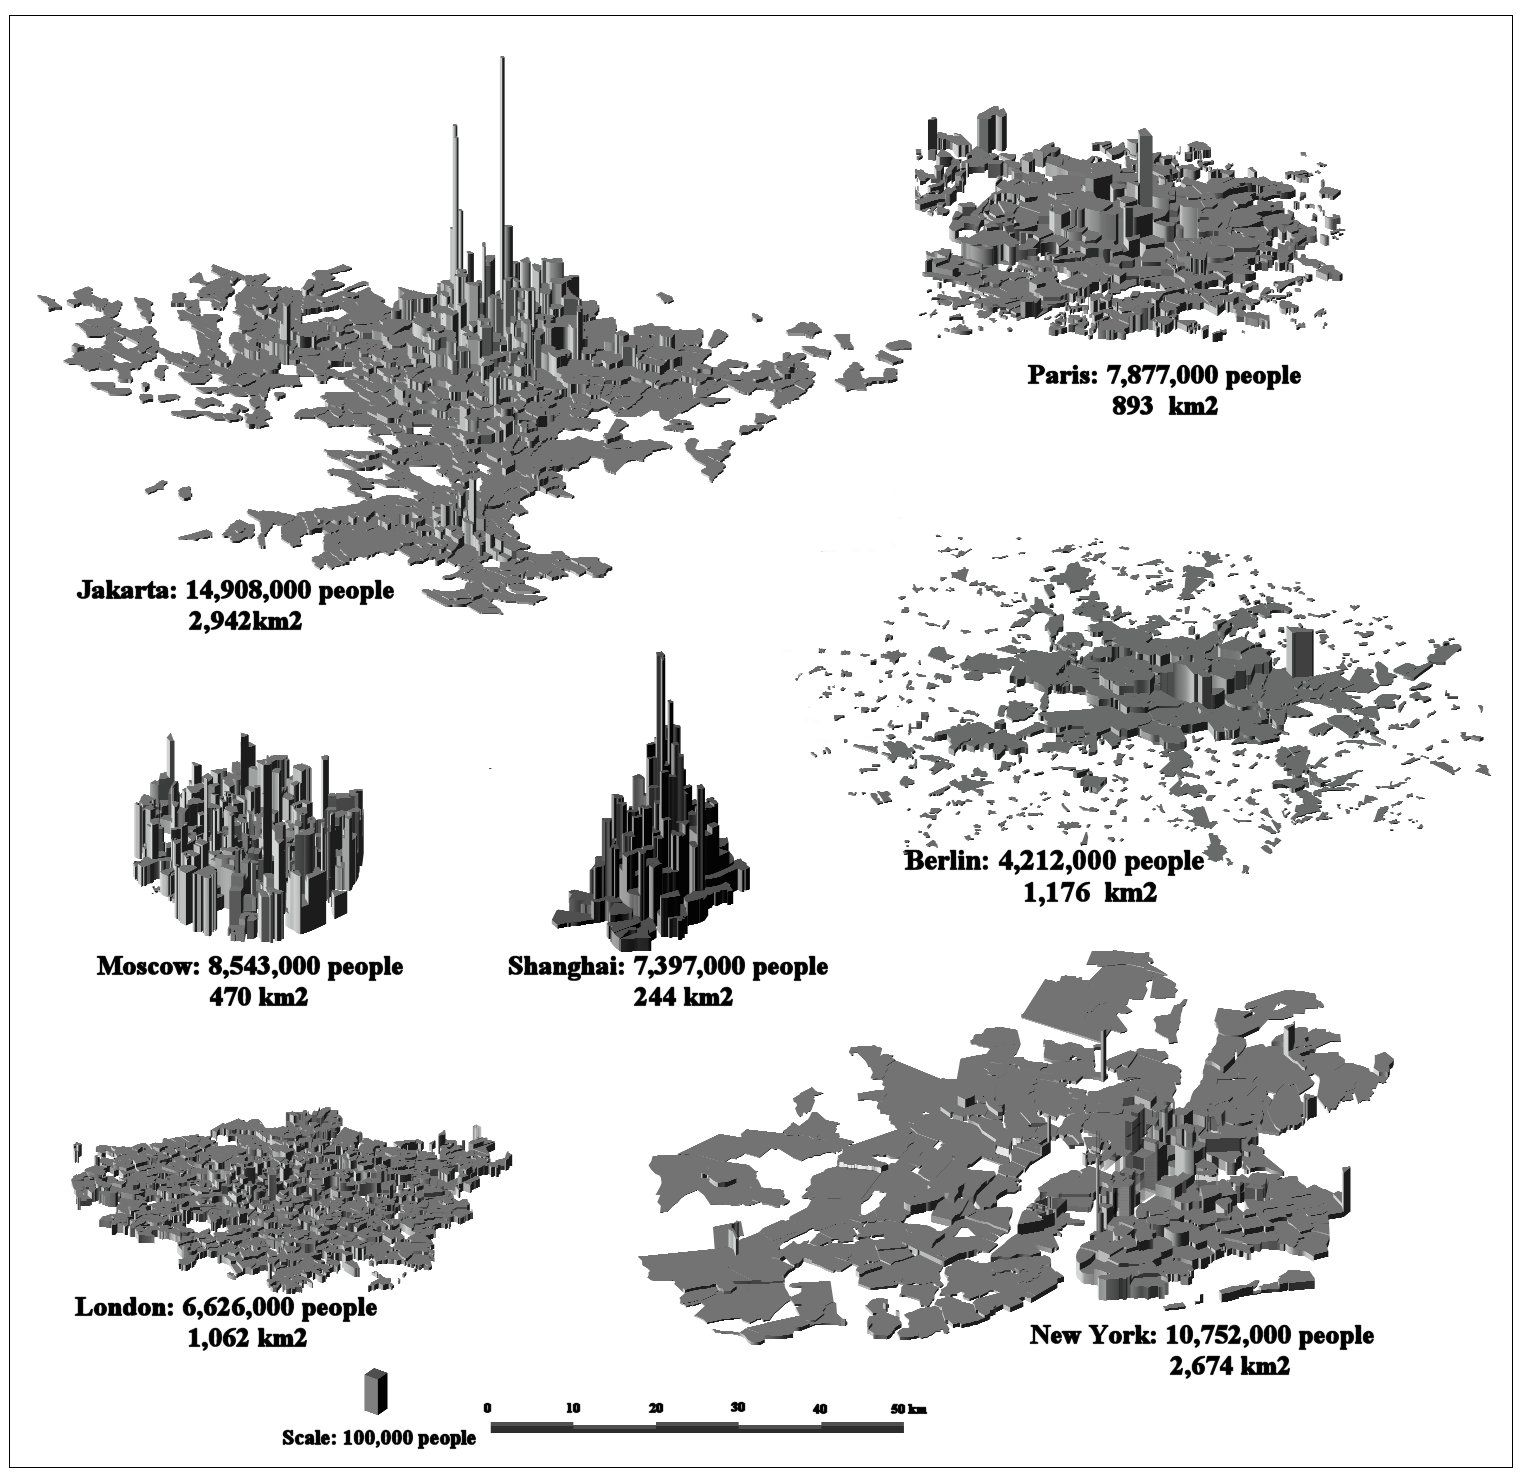 From The Population Densityysis Diagrams About Some